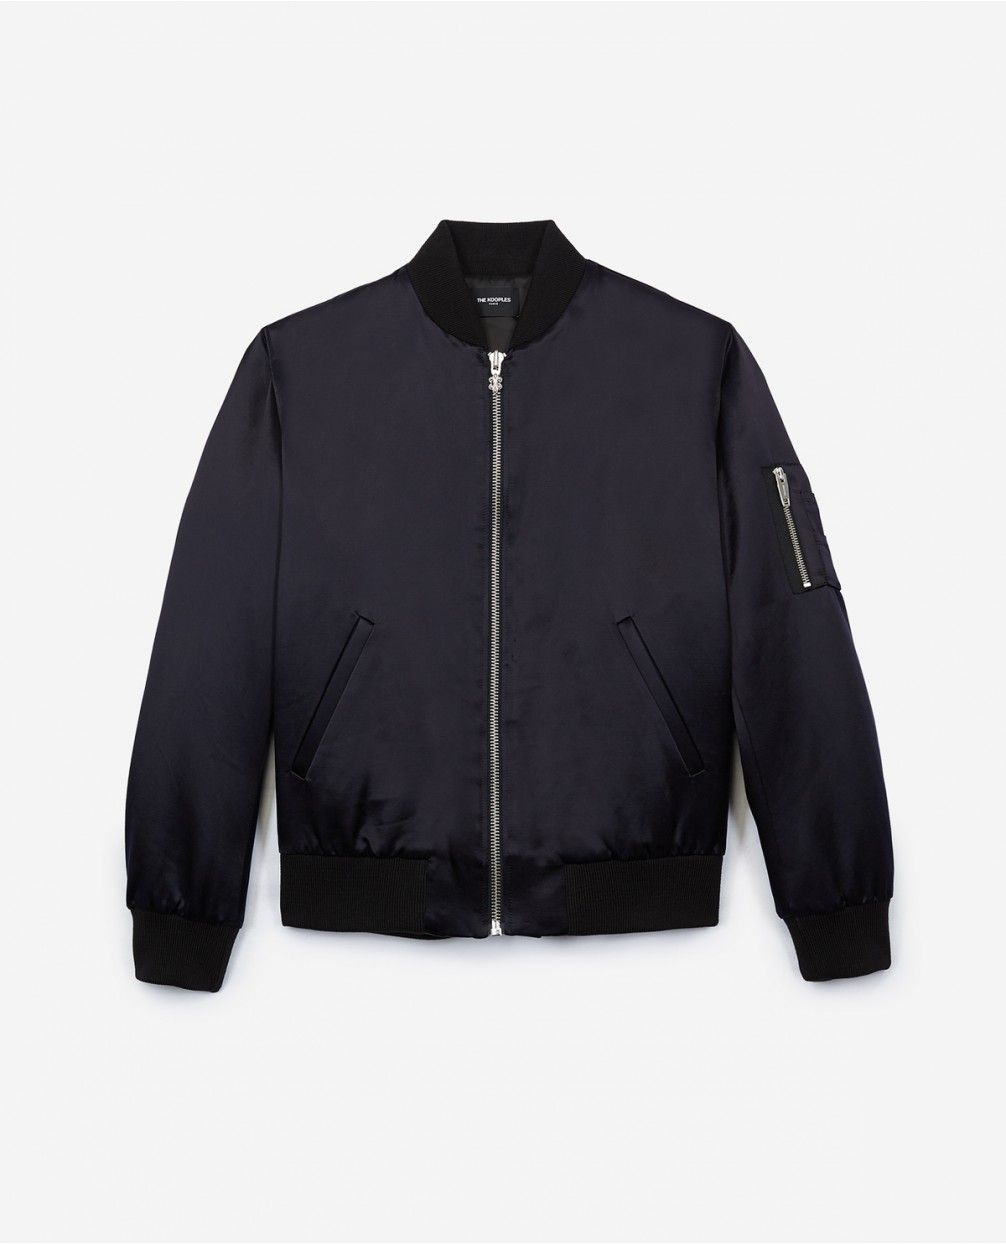 Satin Bomber Jacket With Spider Embroidery At The Back Satin Bomber Jacket Bomber Jacket Mens Clothing Lines [ 1244 x 1006 Pixel ]